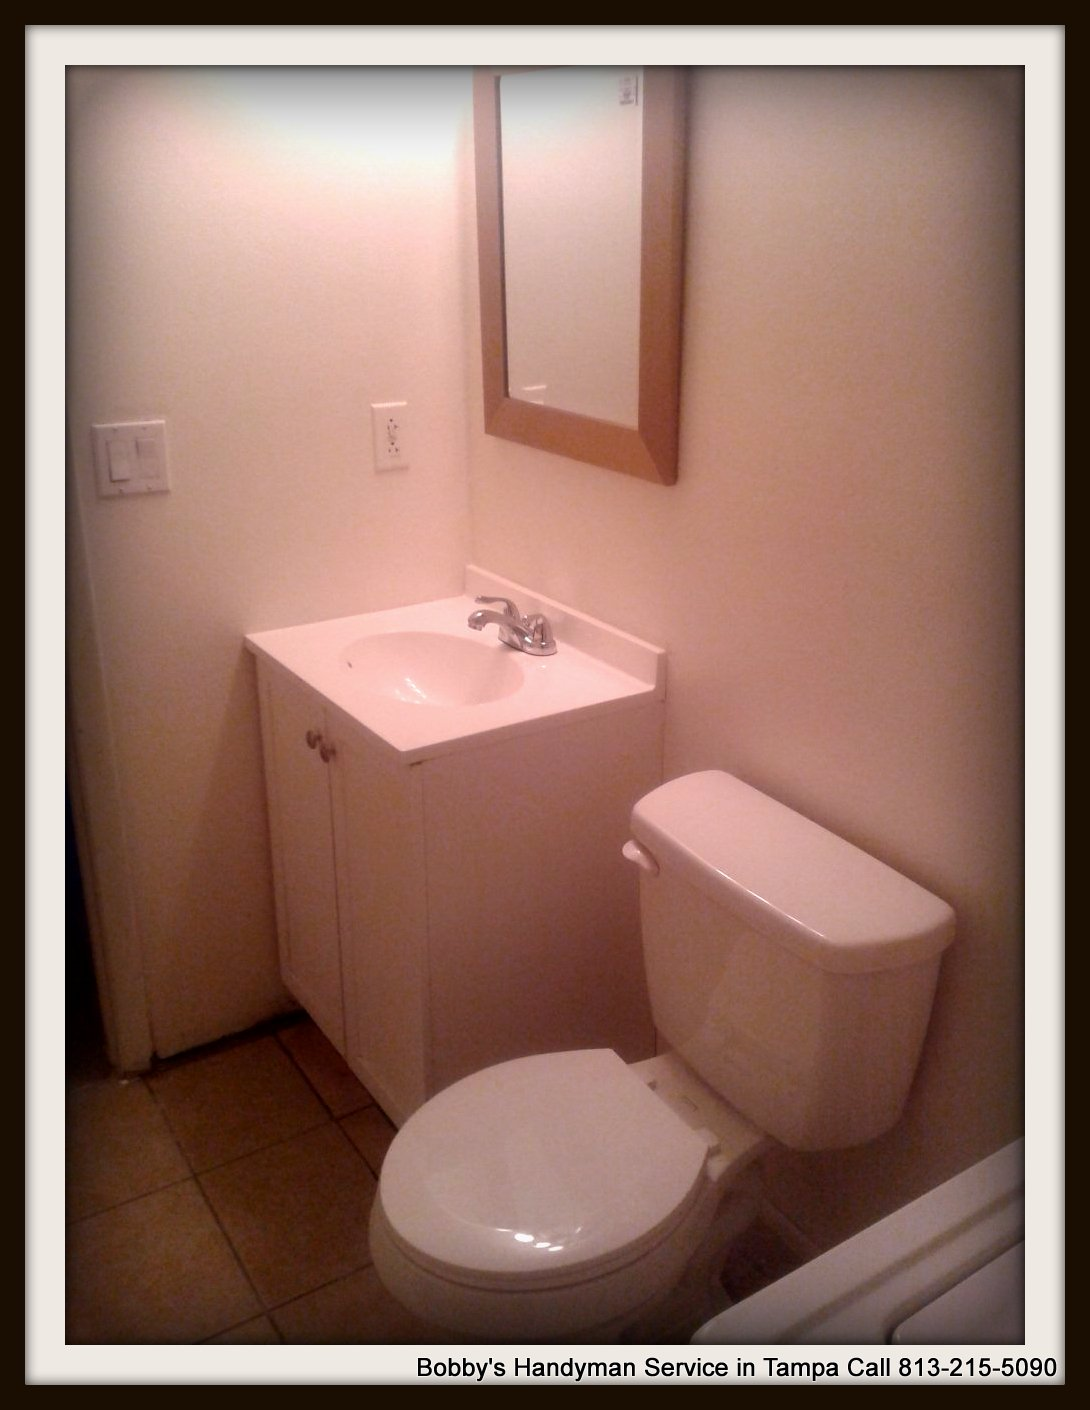 Bathroom Renovation Tampa Contractor 813 215 5090